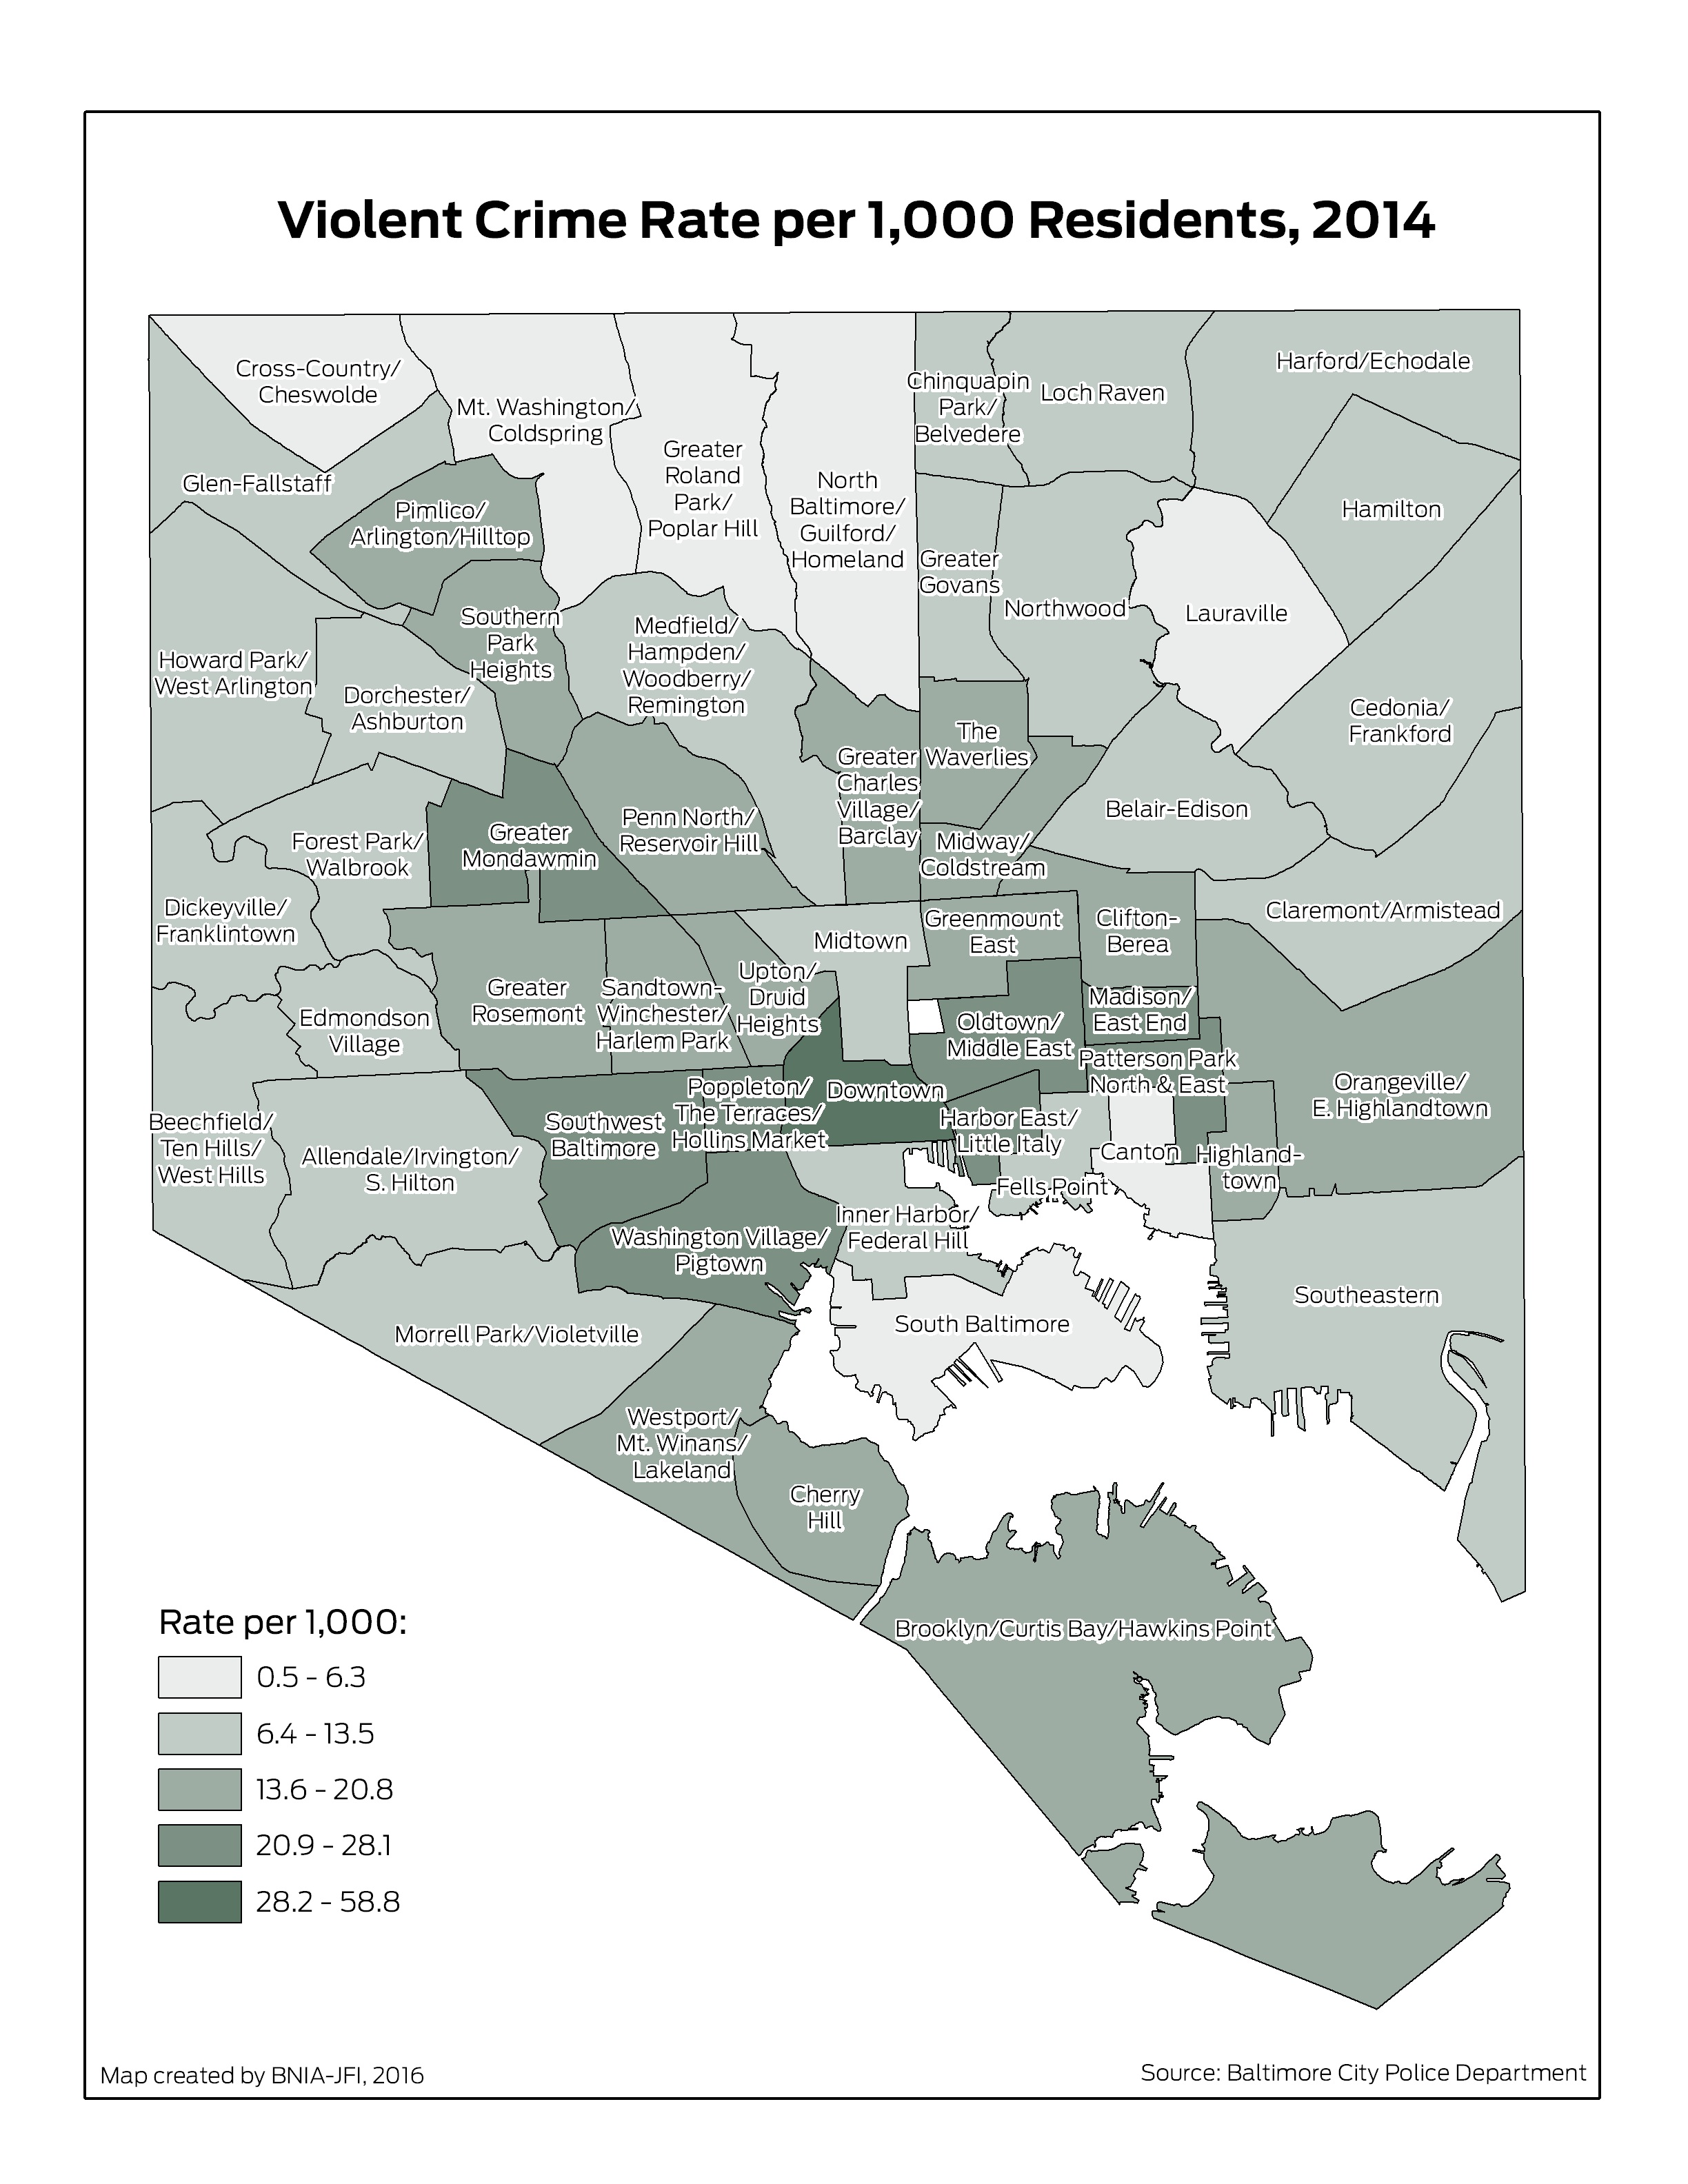 Gallery Vital Signs Crime Safety Maps BNIA Baltimore - Crime rate per 1000 us map